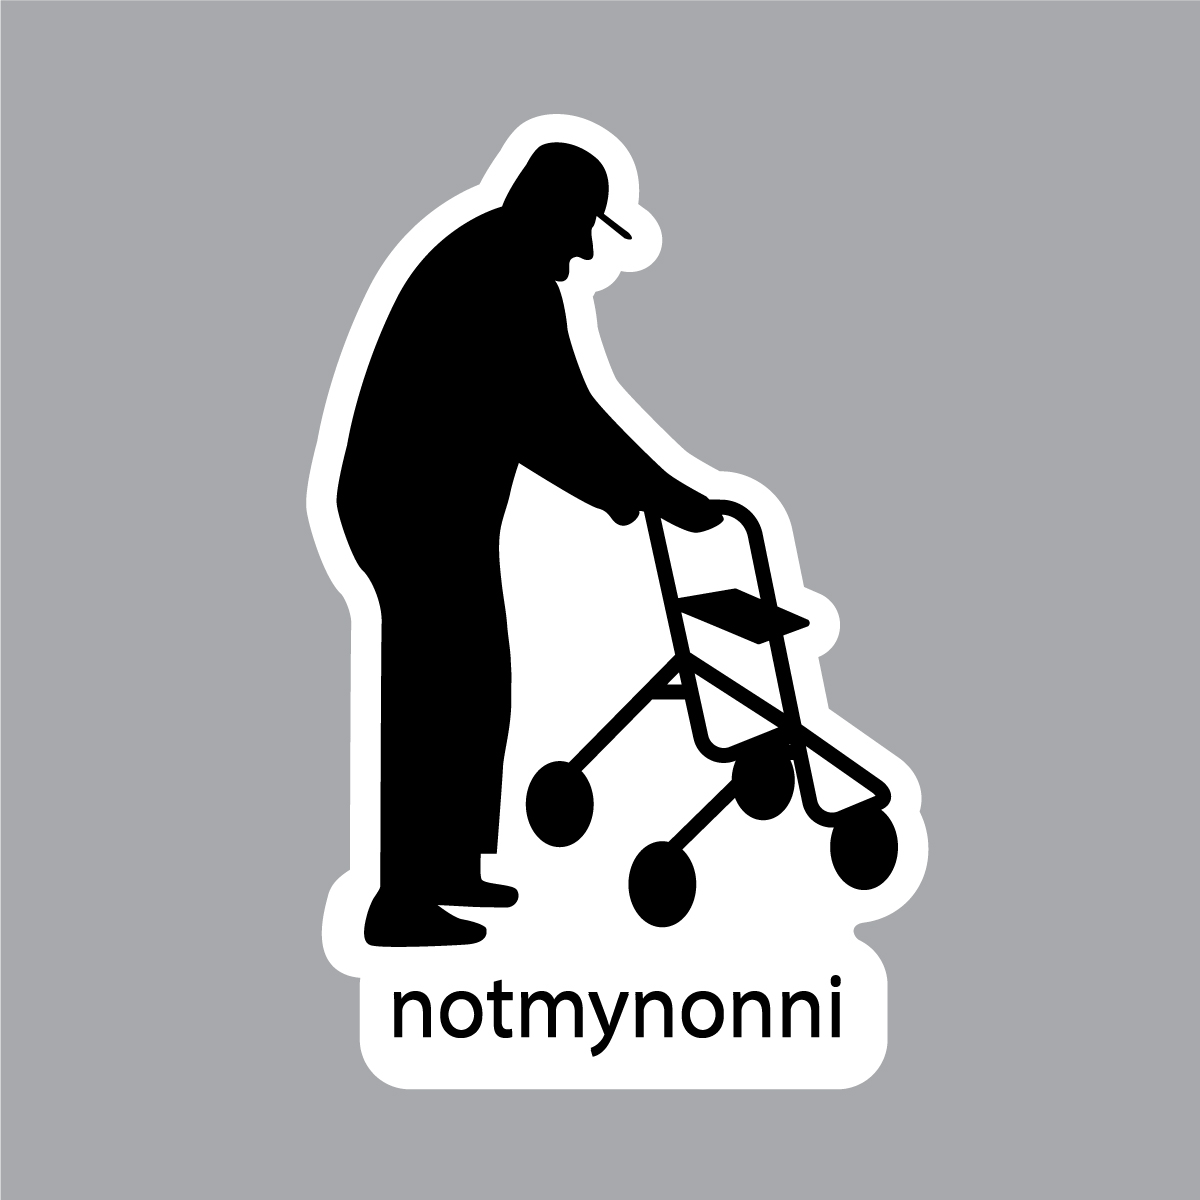 Notmynonni Sticker